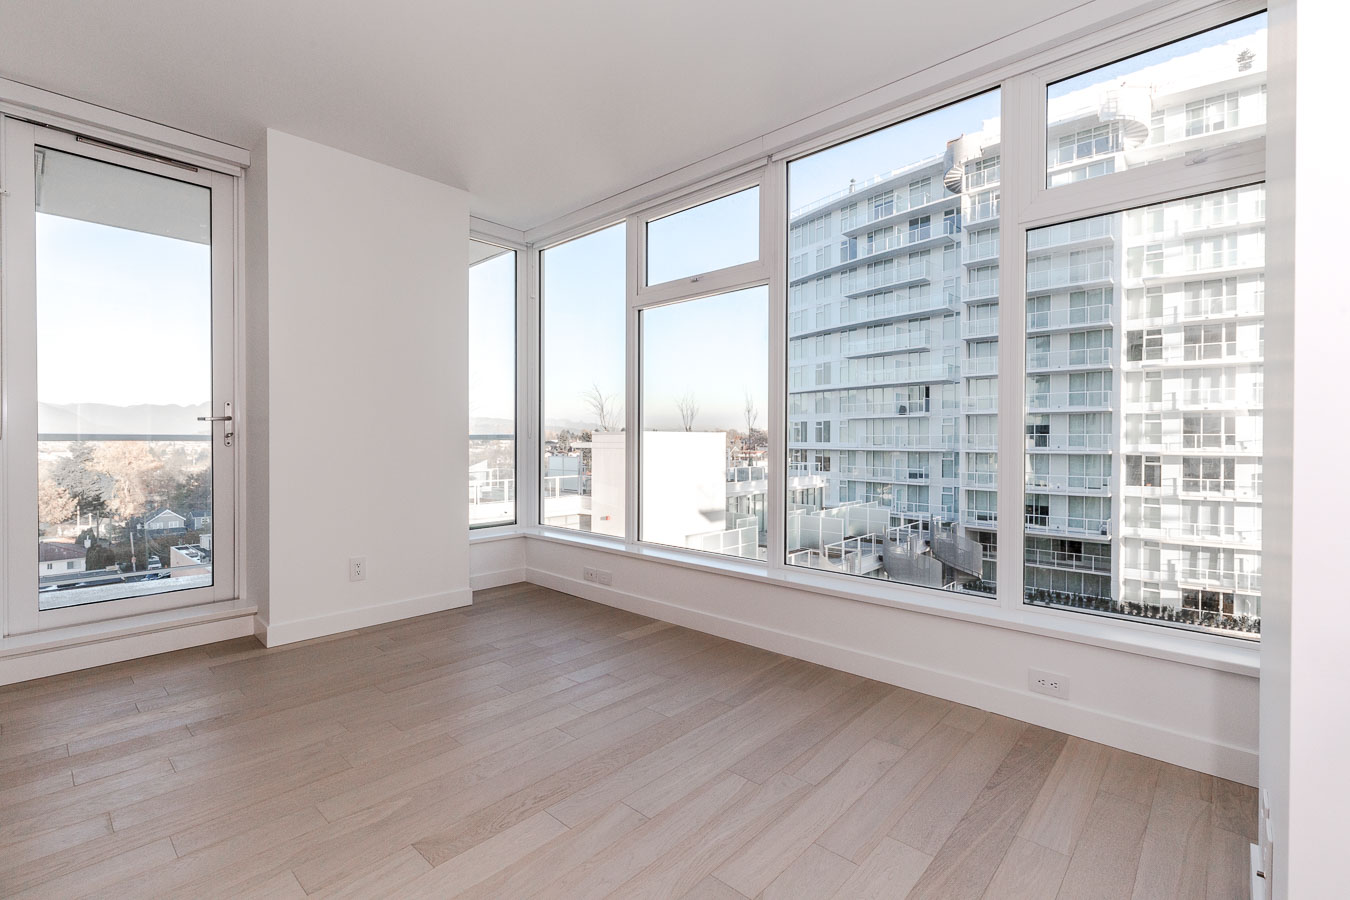 Bedroom with ash flooring at Vancouver condo rental with a view.